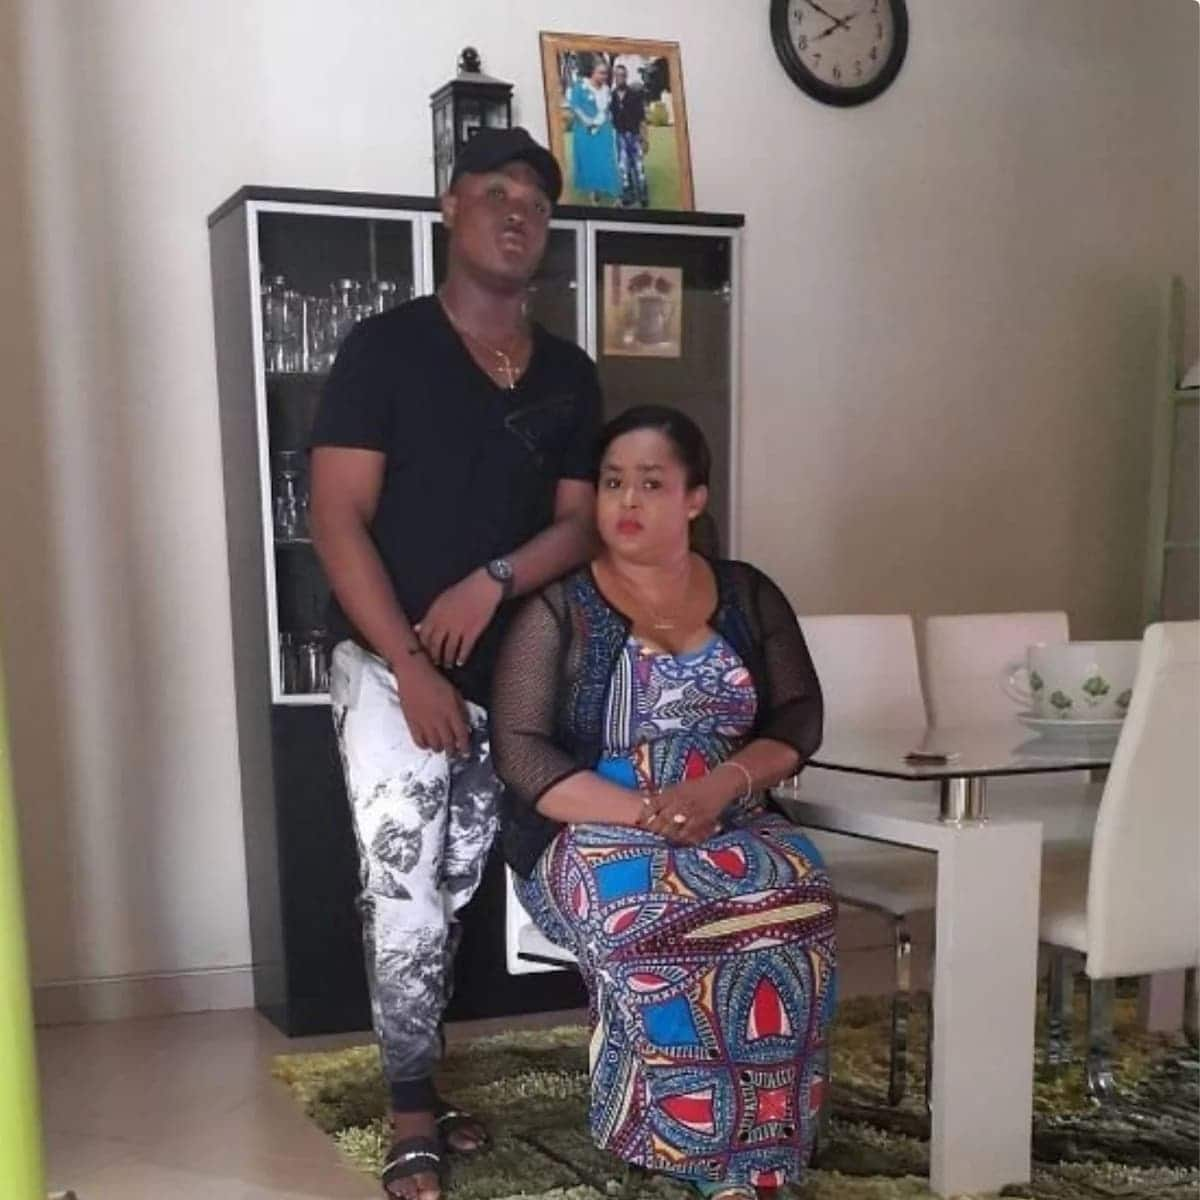 Vivian Jill Lawrence narrates how she got pregnant with her first son at age 15